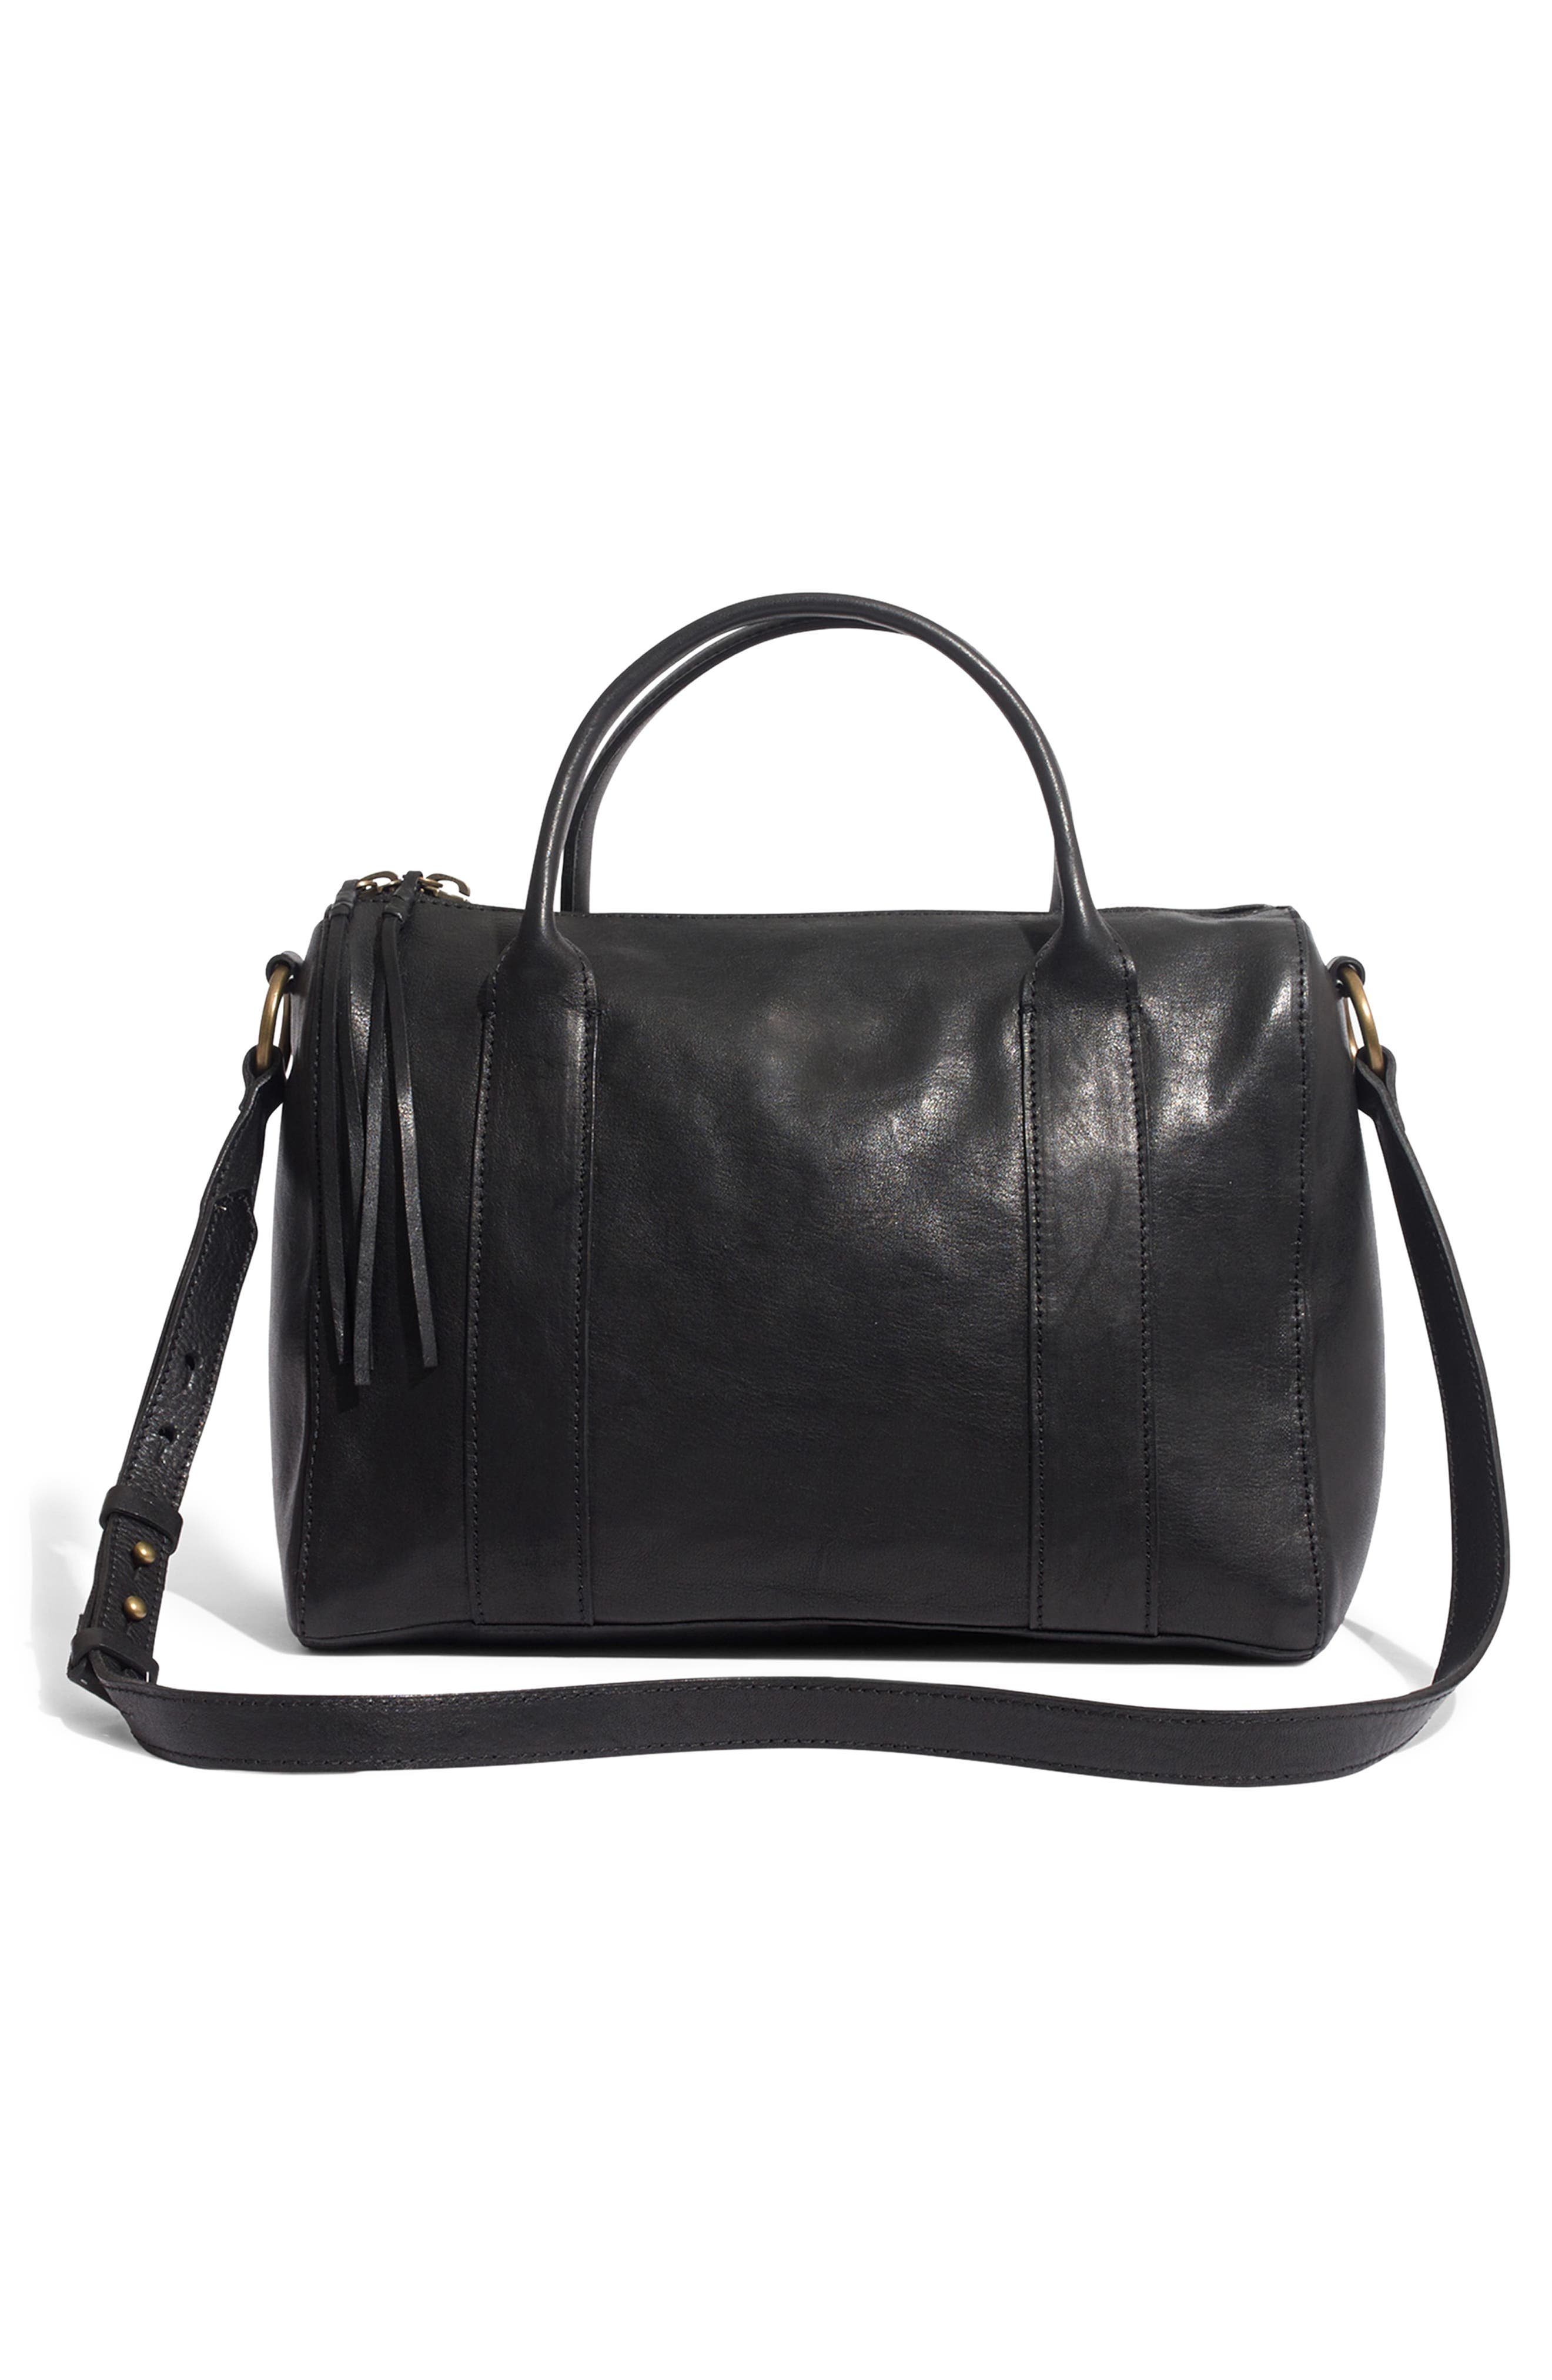 O-Ring Leather Satchel,                             Alternate thumbnail 3, color,                             001